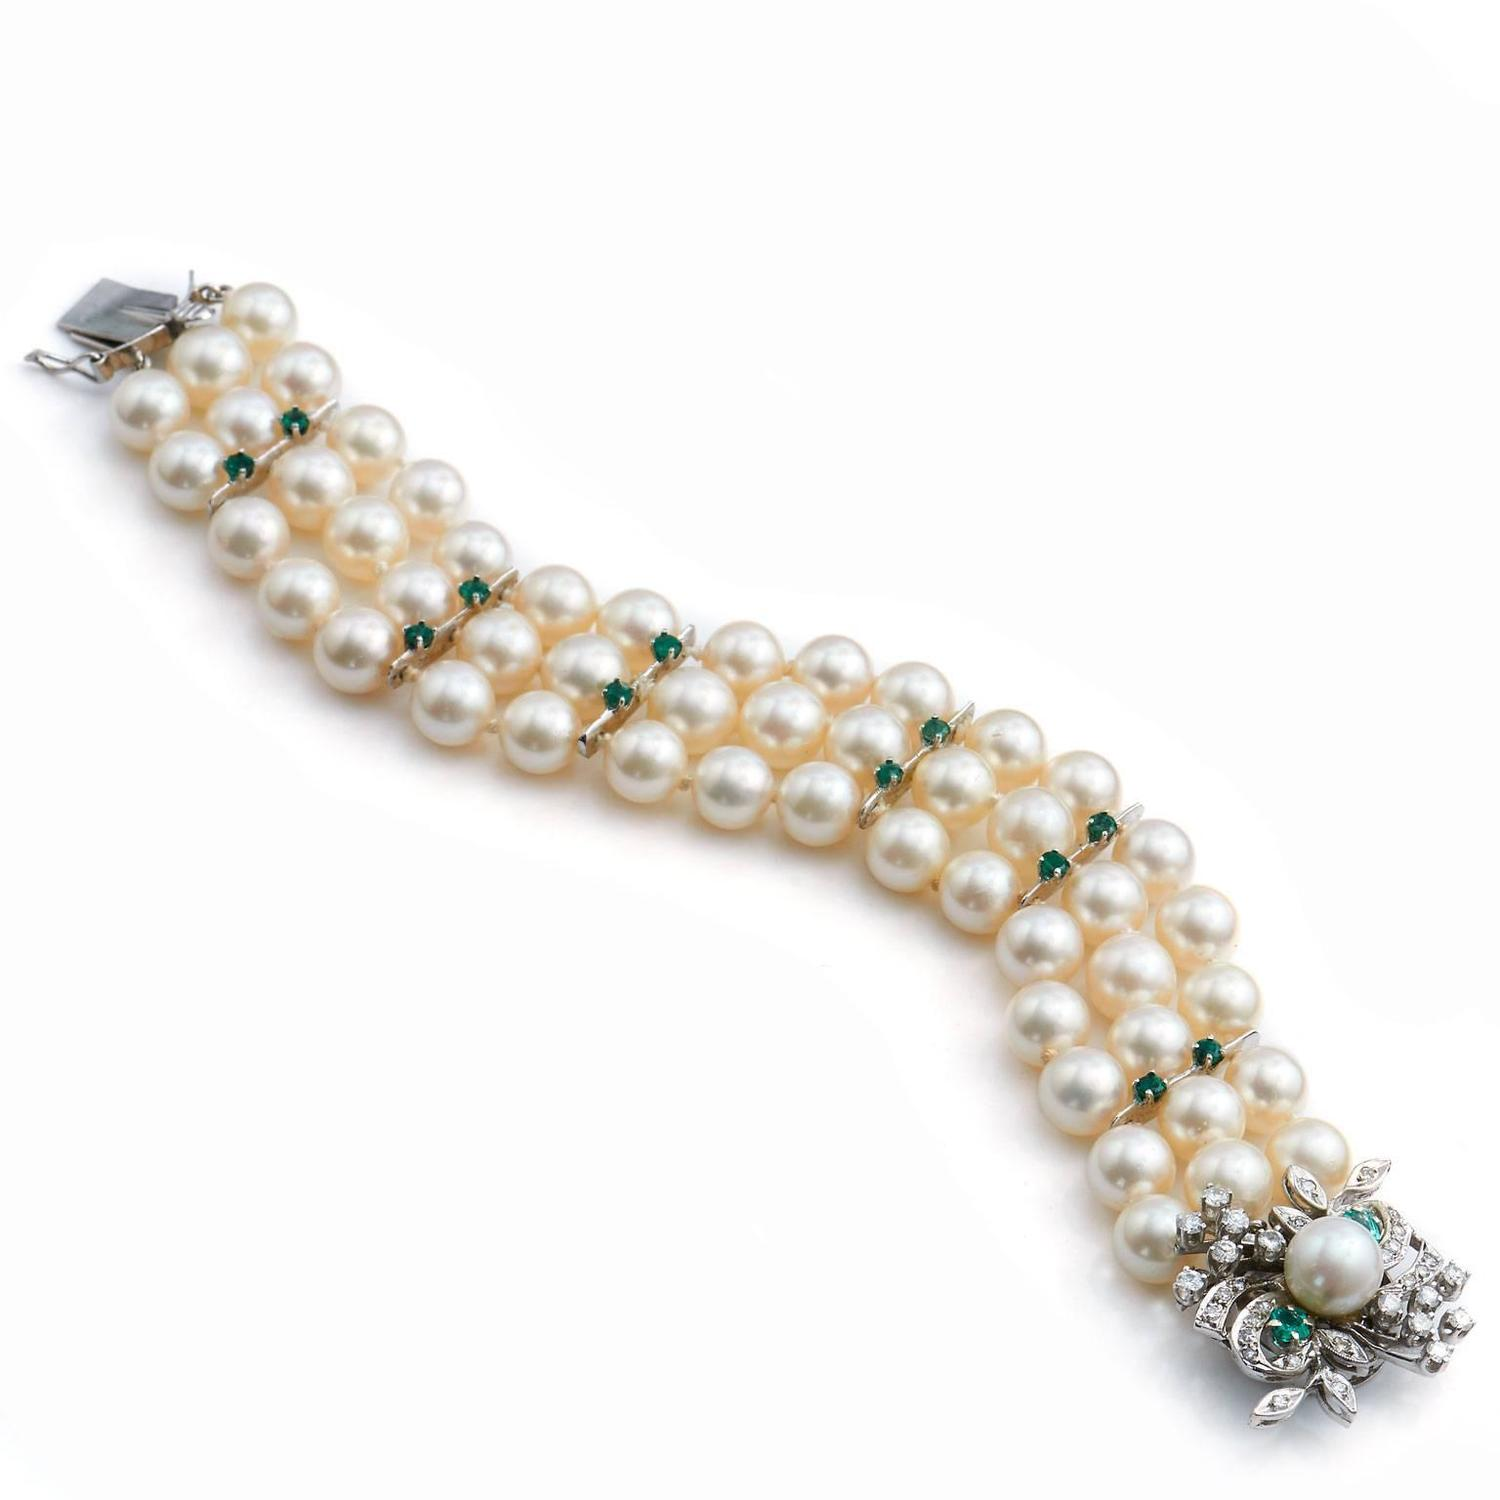 Akoya Pearl Bracelet With Emerald And Diamond Clasp For